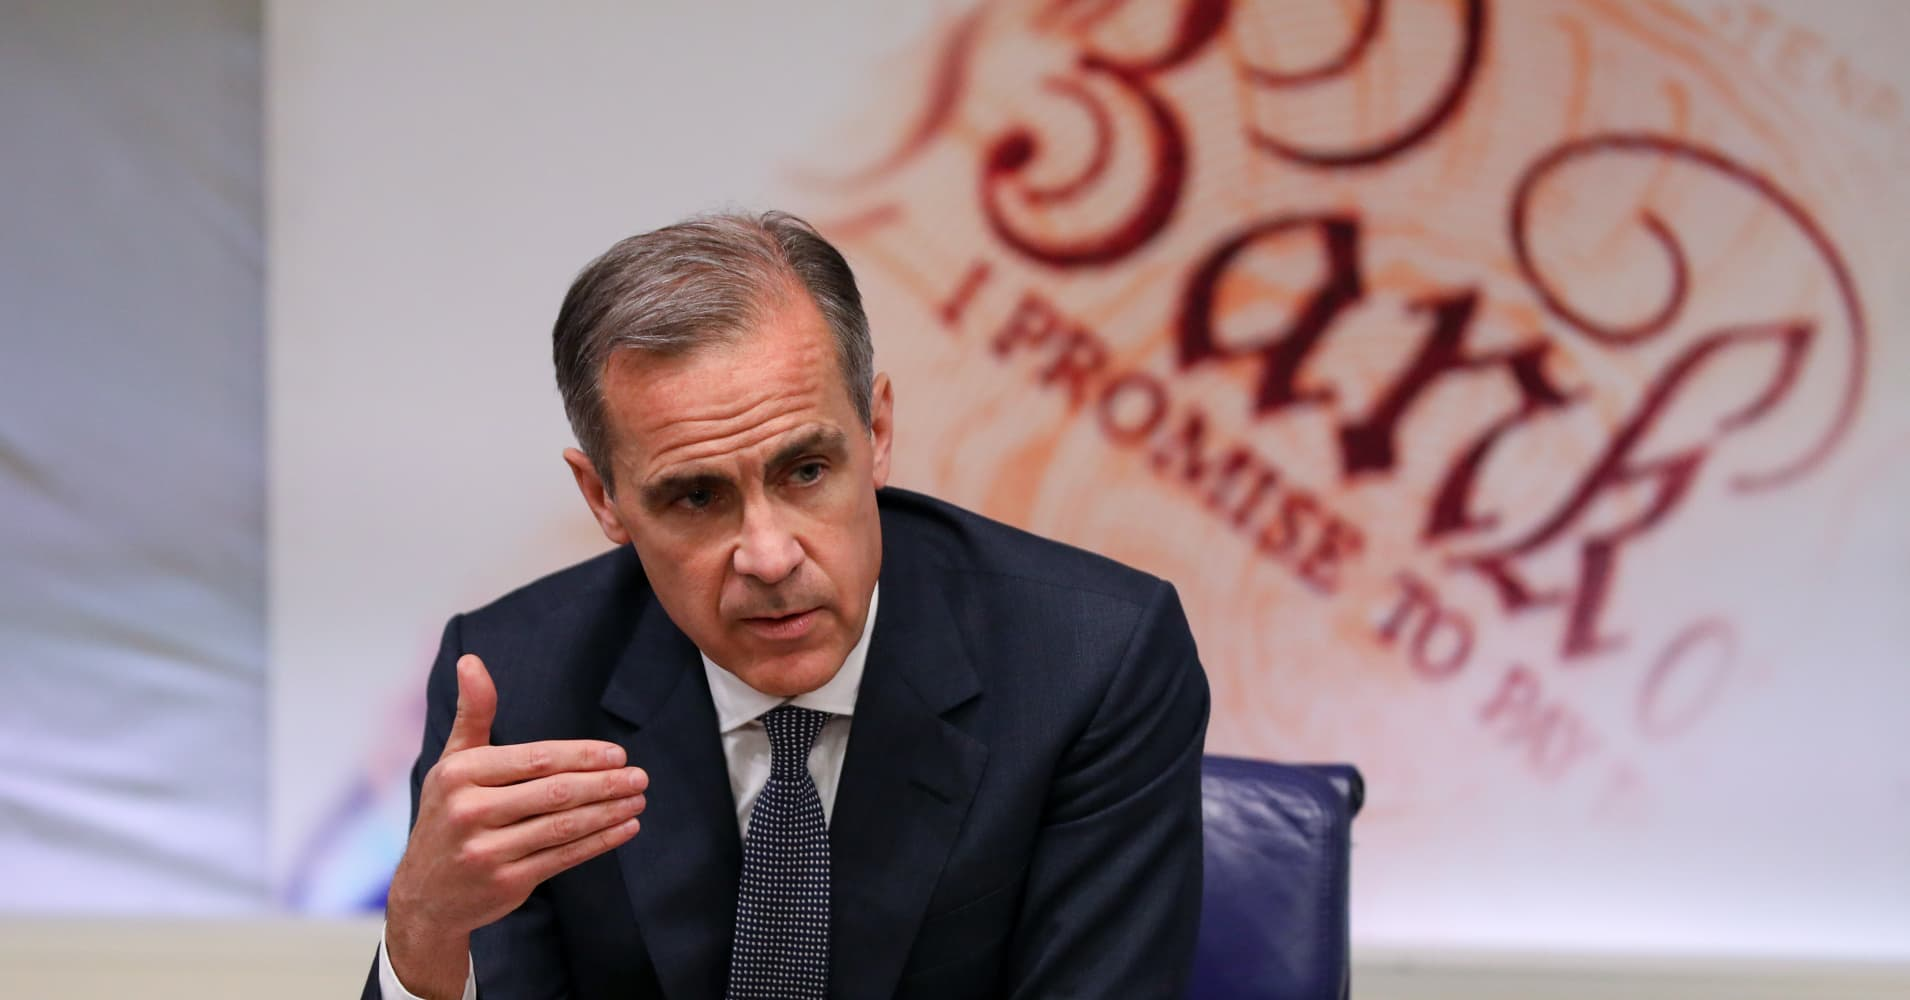 European markets open lower amid earnings; Bank of England to announce rate decision